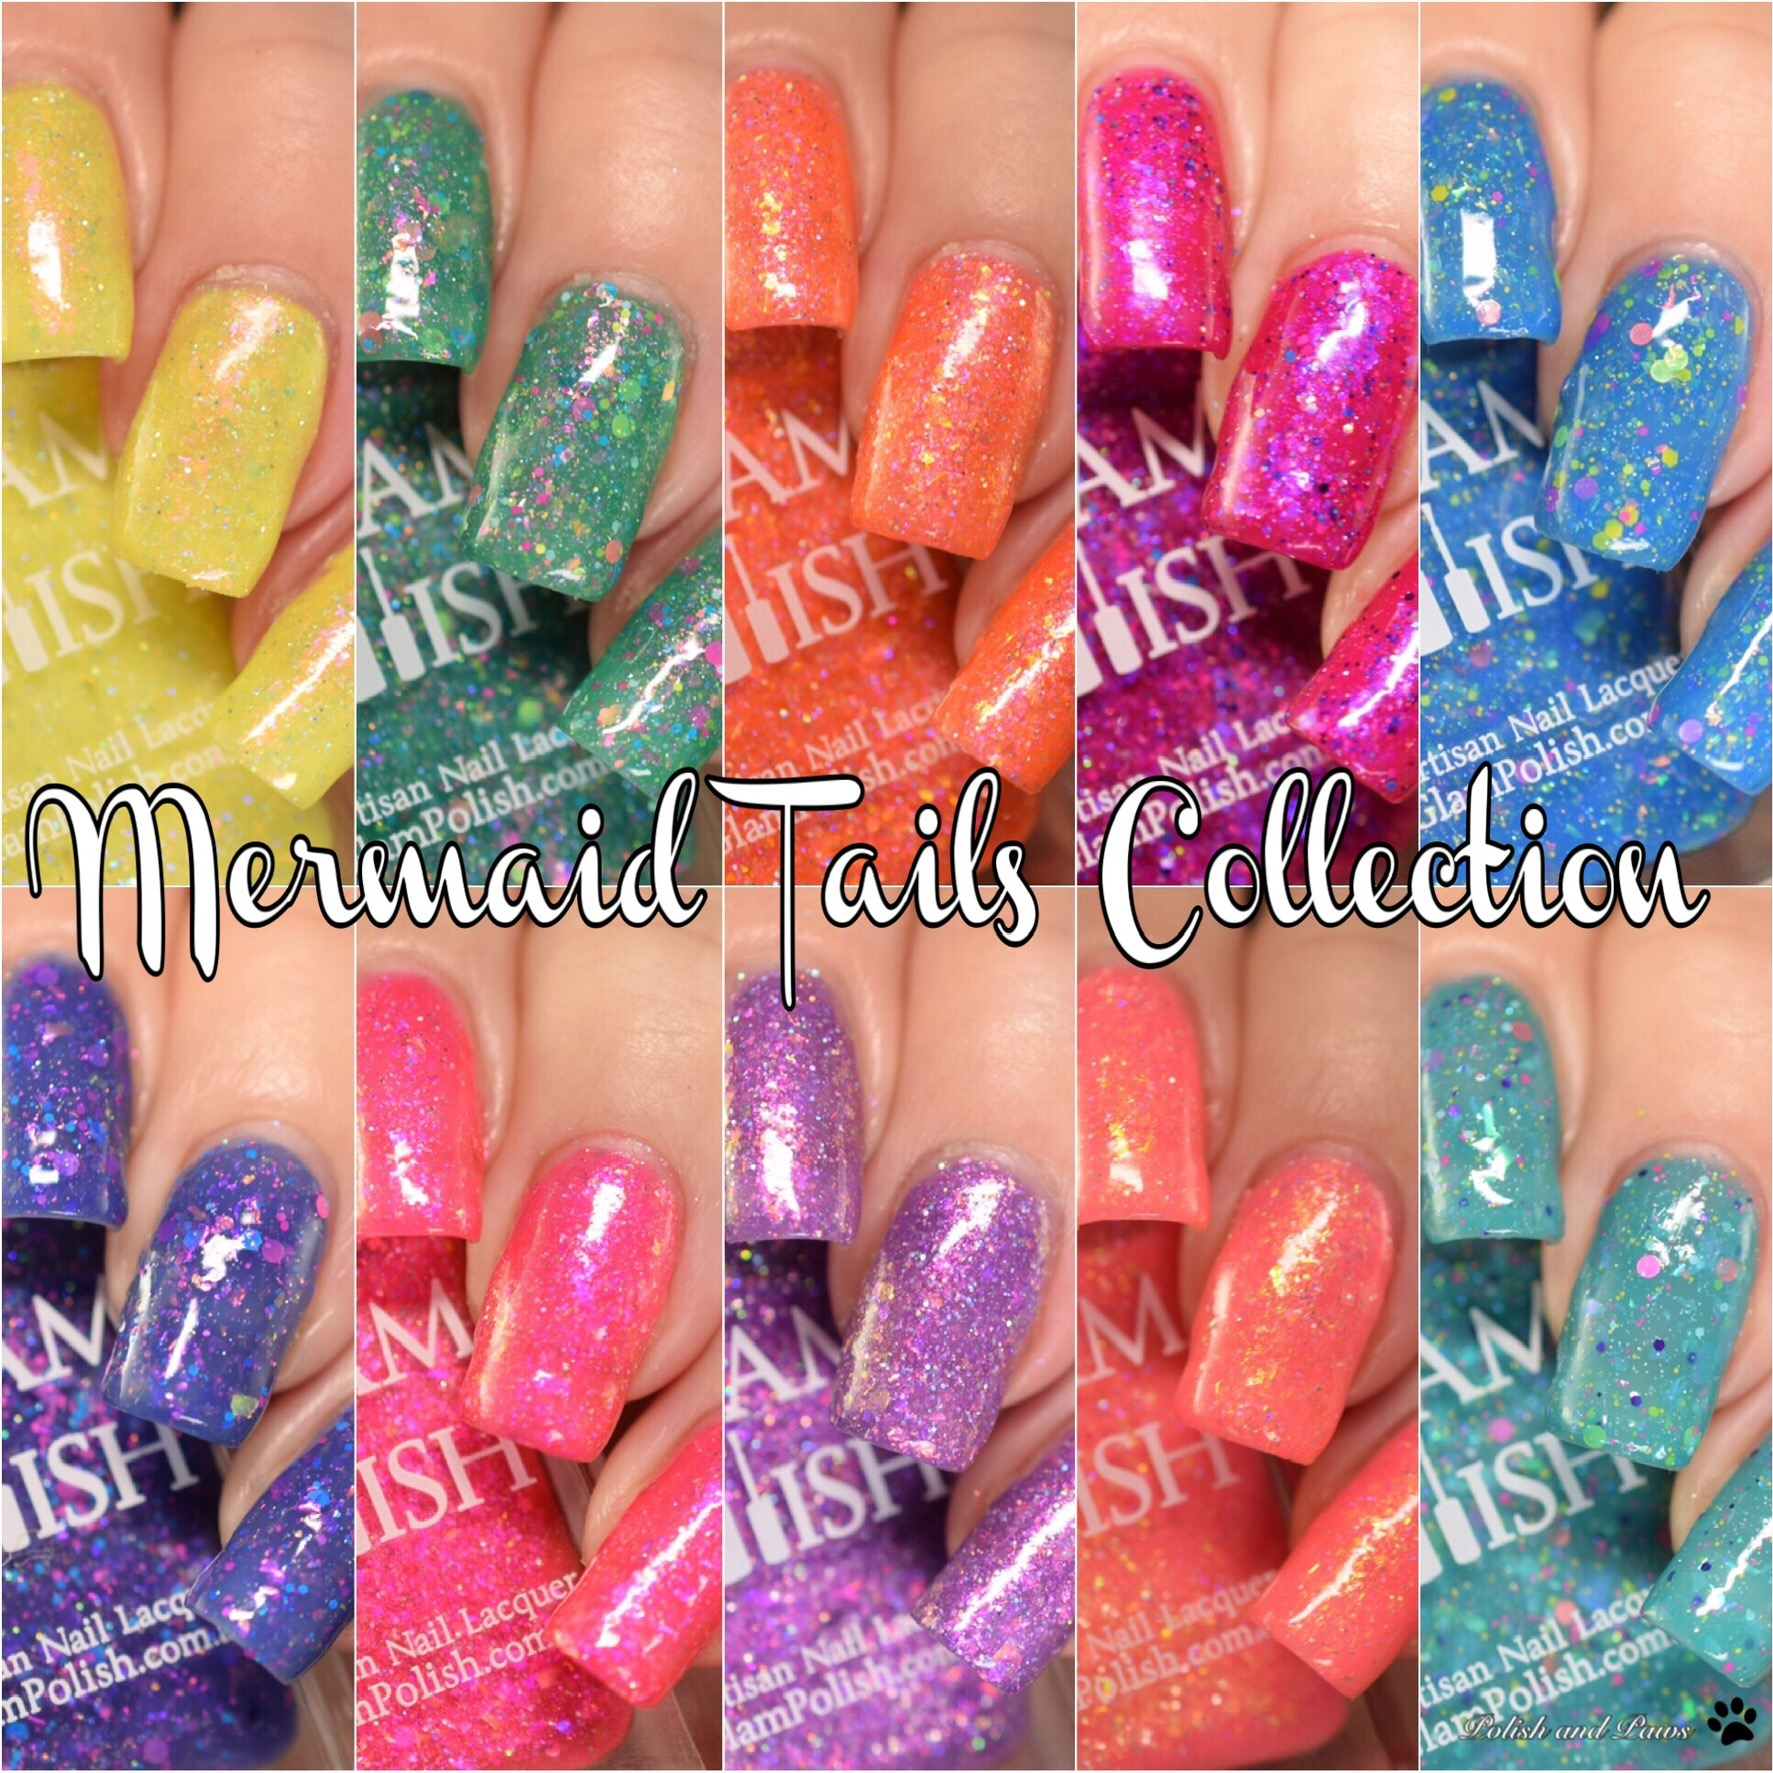 Glam Polish Mermaid Tails Collection, Part II